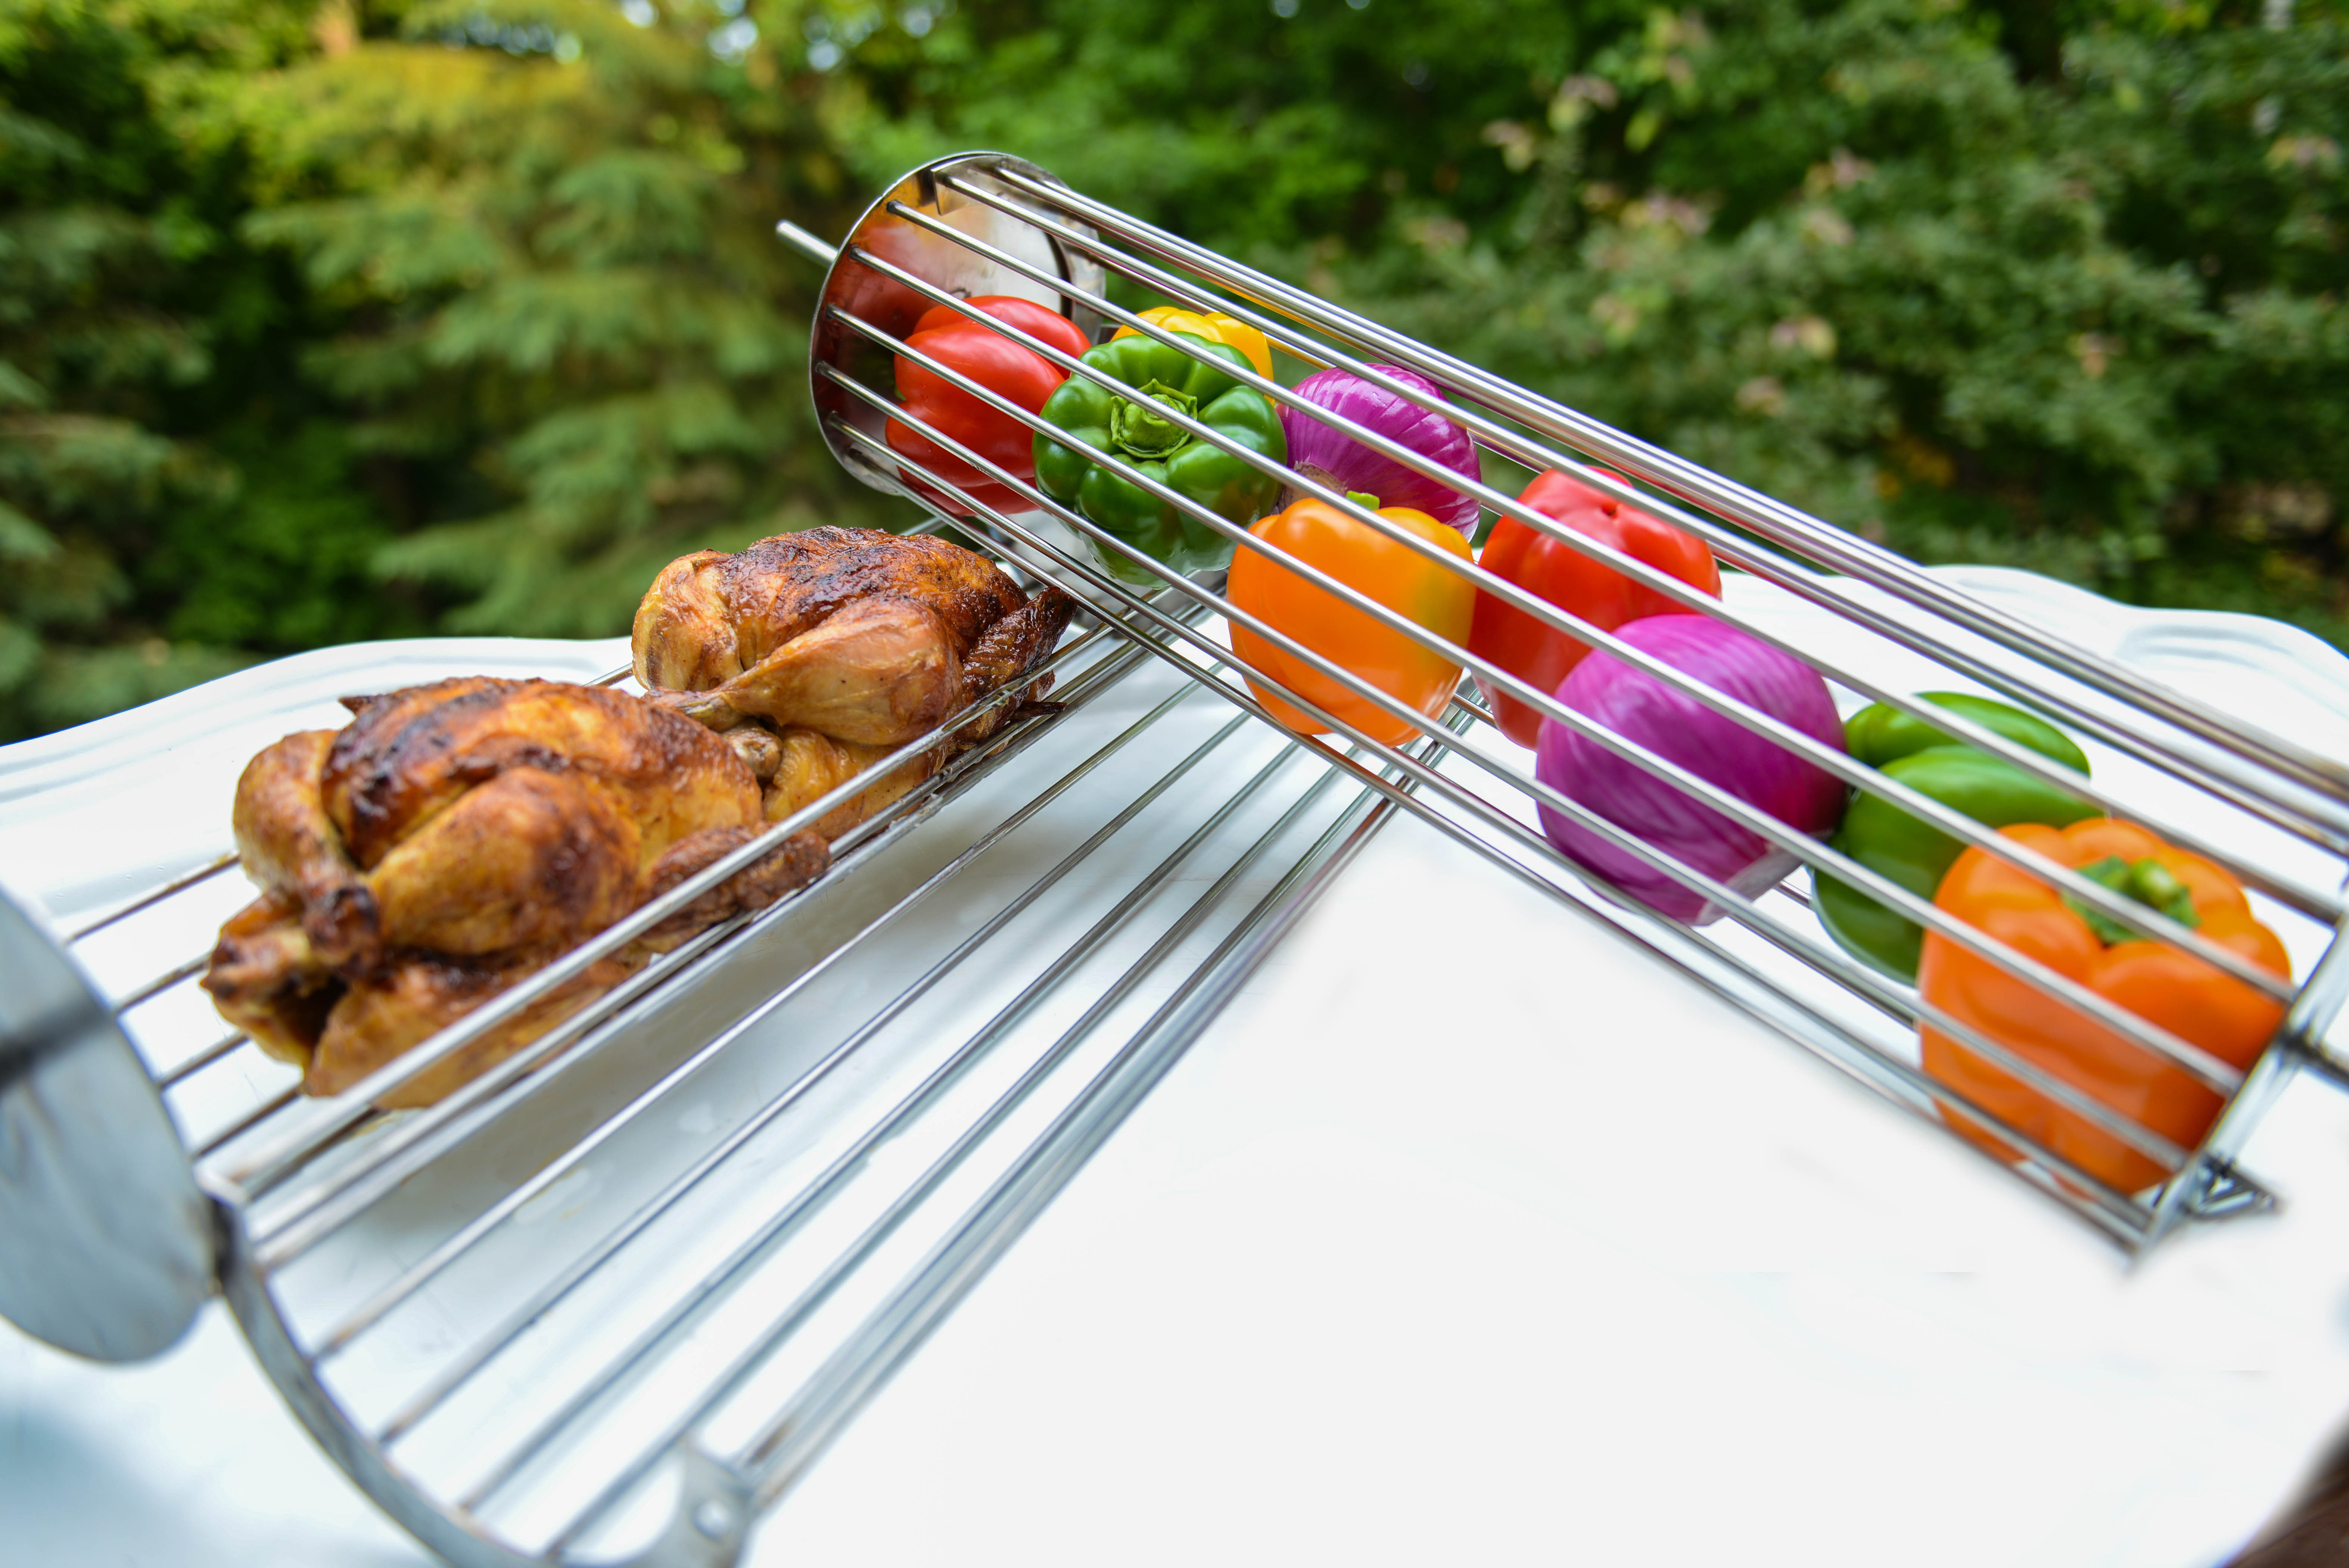 Rotisserie grilled chicken and vegetables